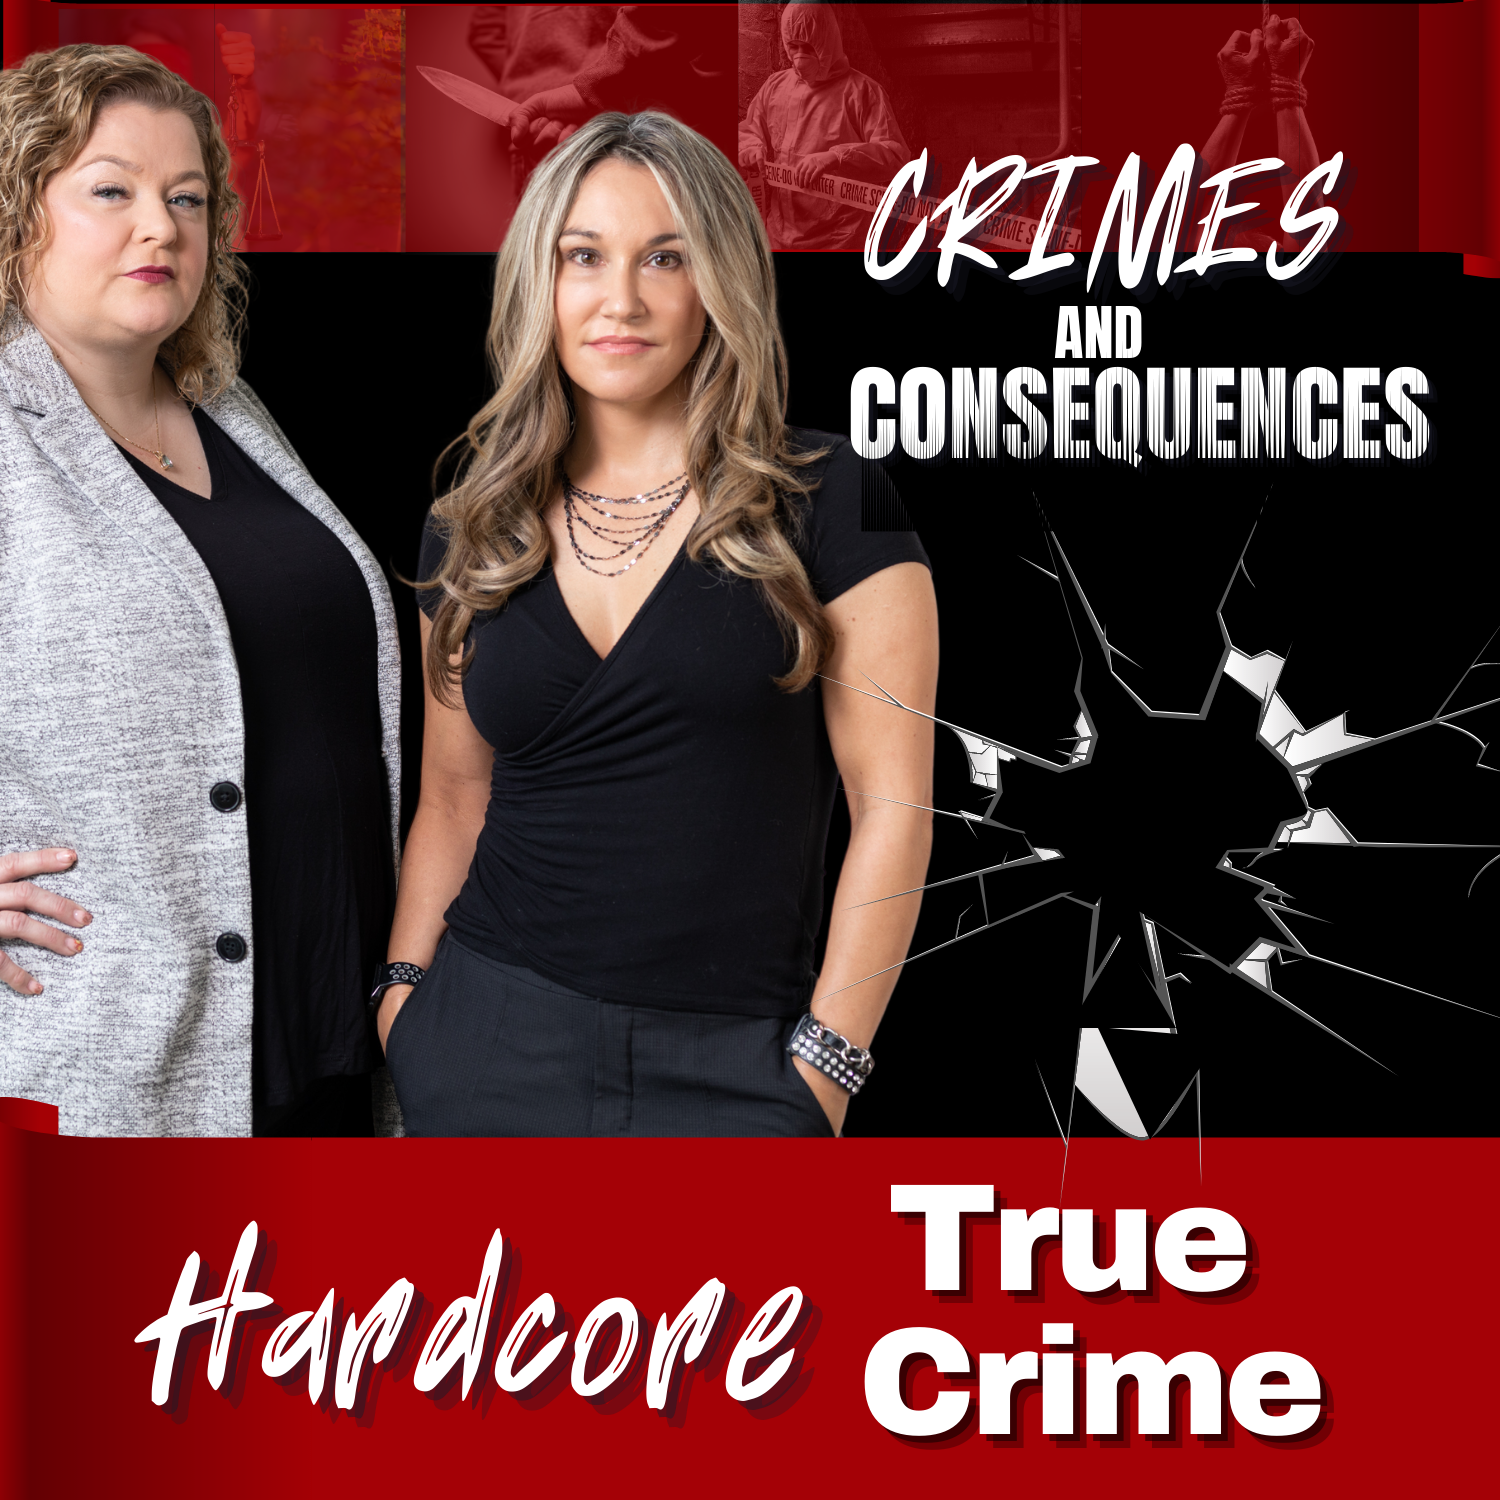 Crimes and Consequences Hardcore True Crime:Crimes and Consequences